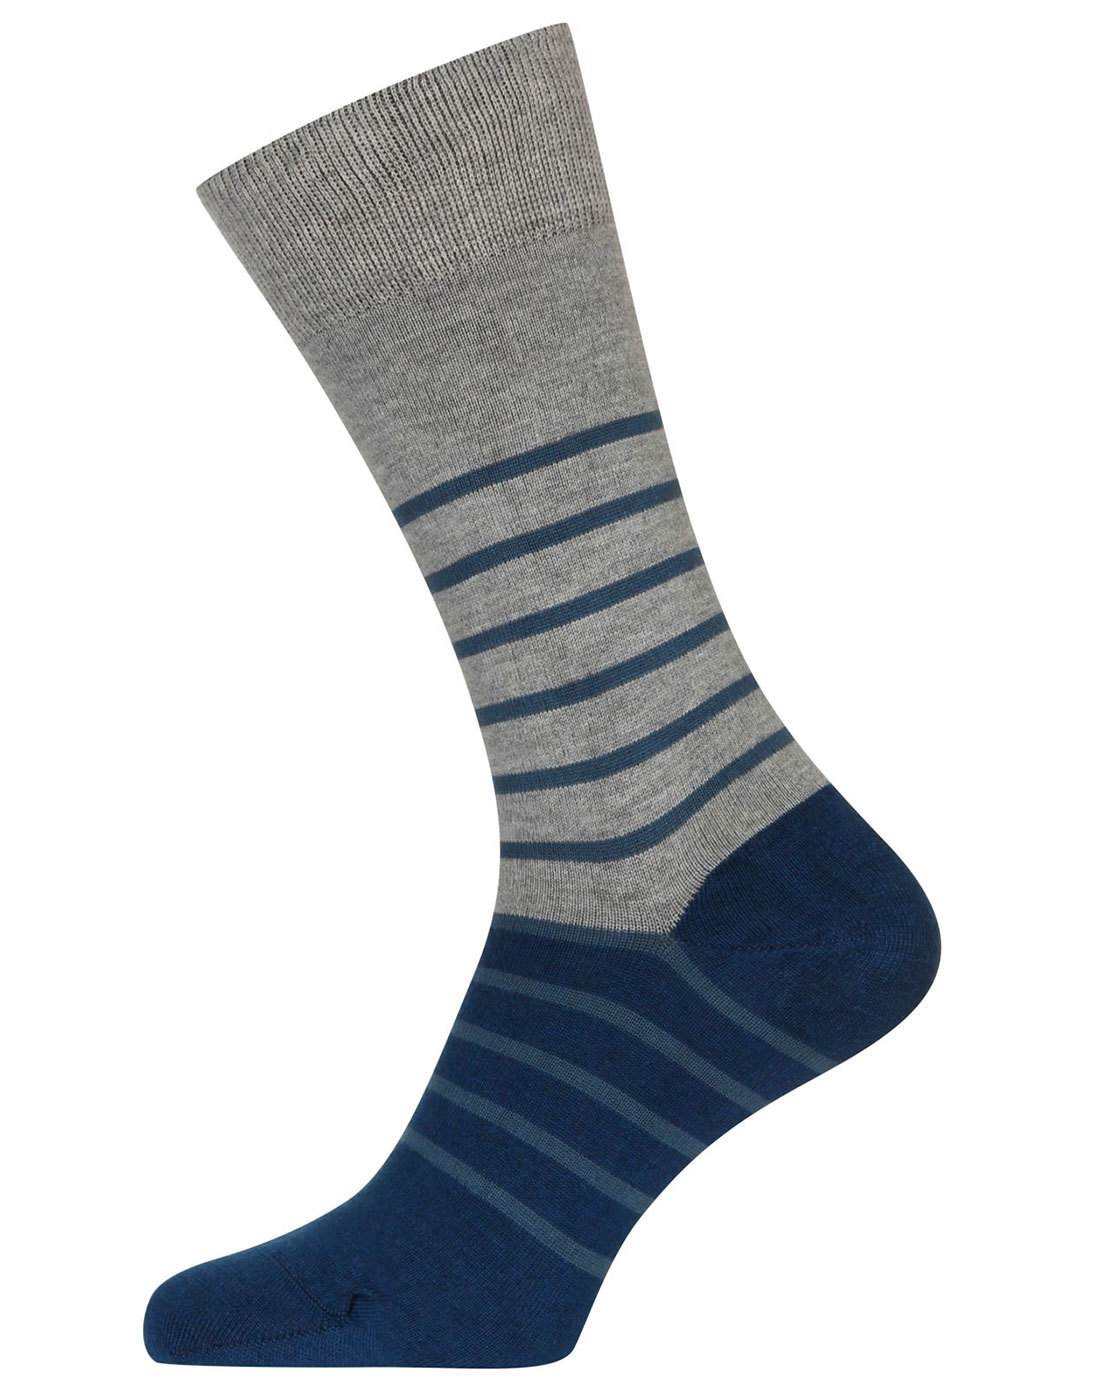 Dionysus JOHN SMEDELY Colour Block Stripe Socks I